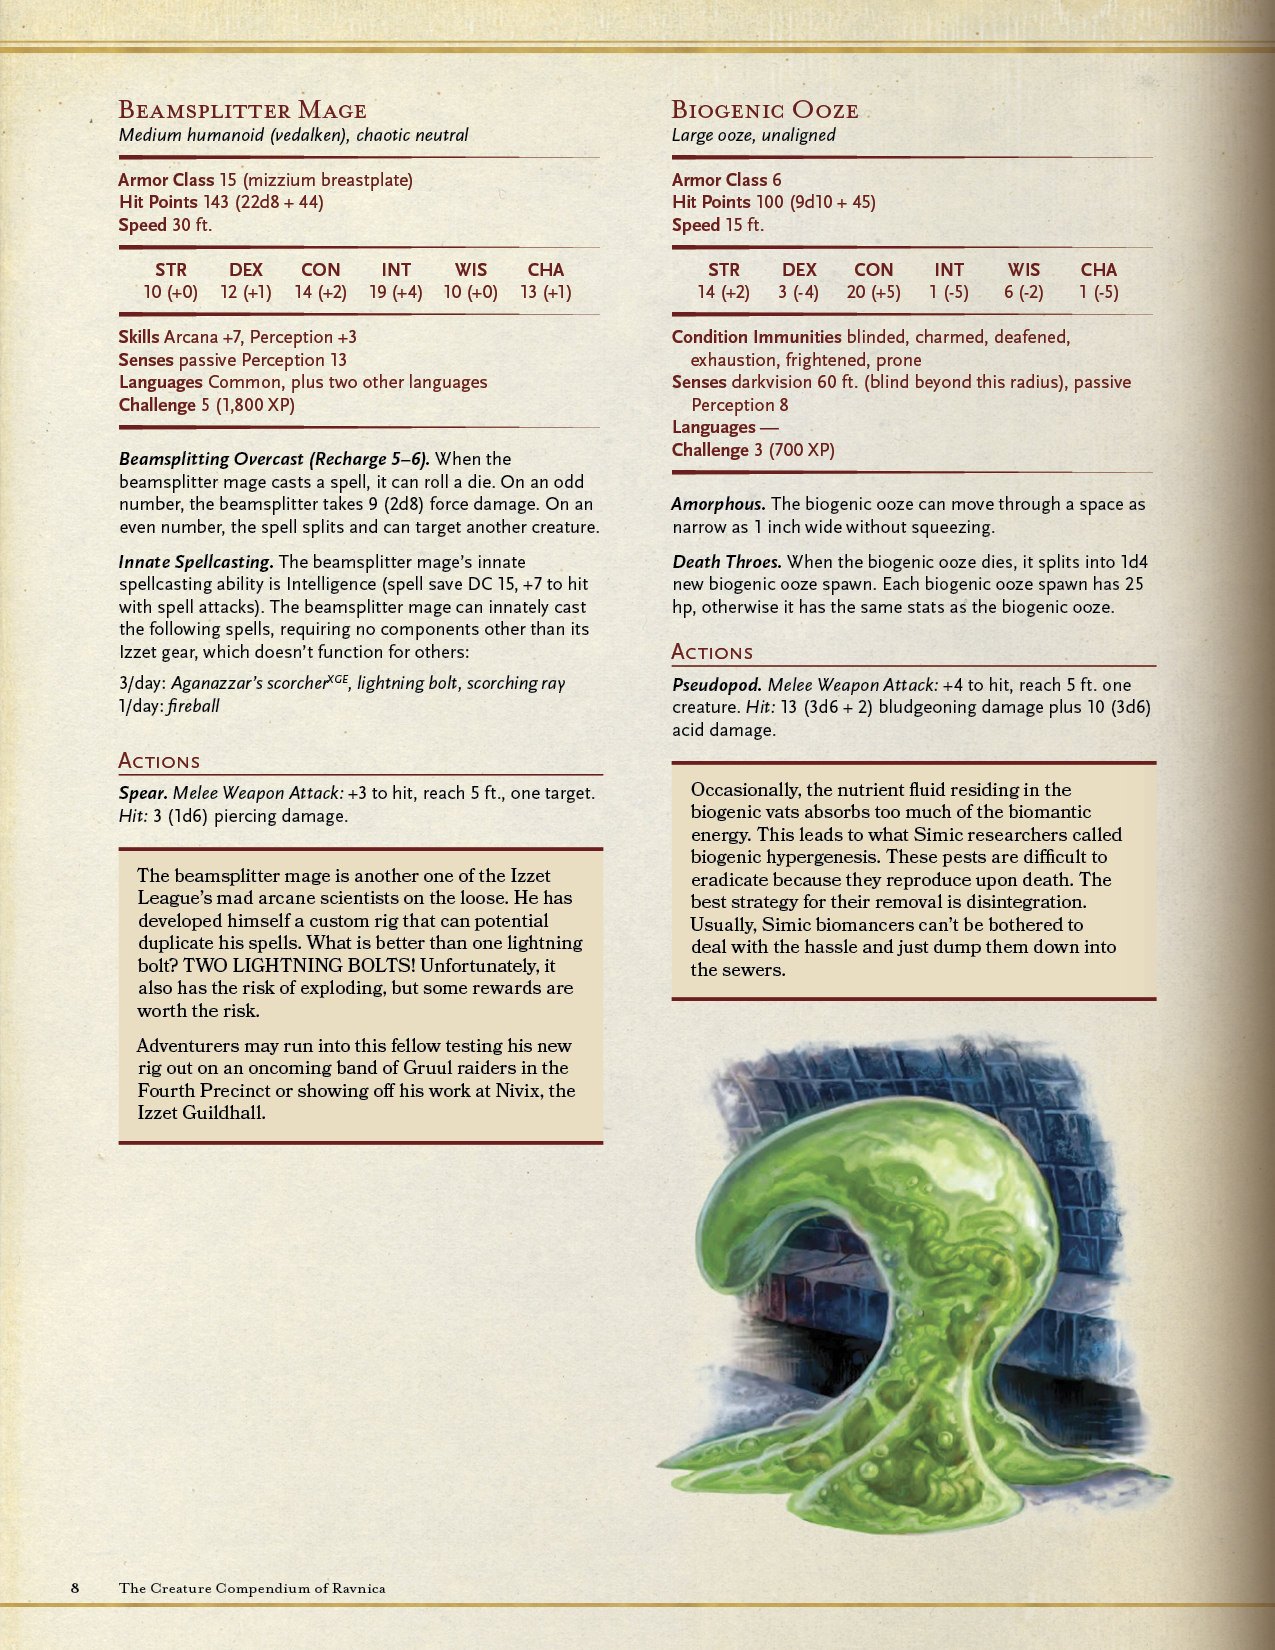 THE CREATURE COMPENDIUM OF RAVNICA Gives Details for Including Over